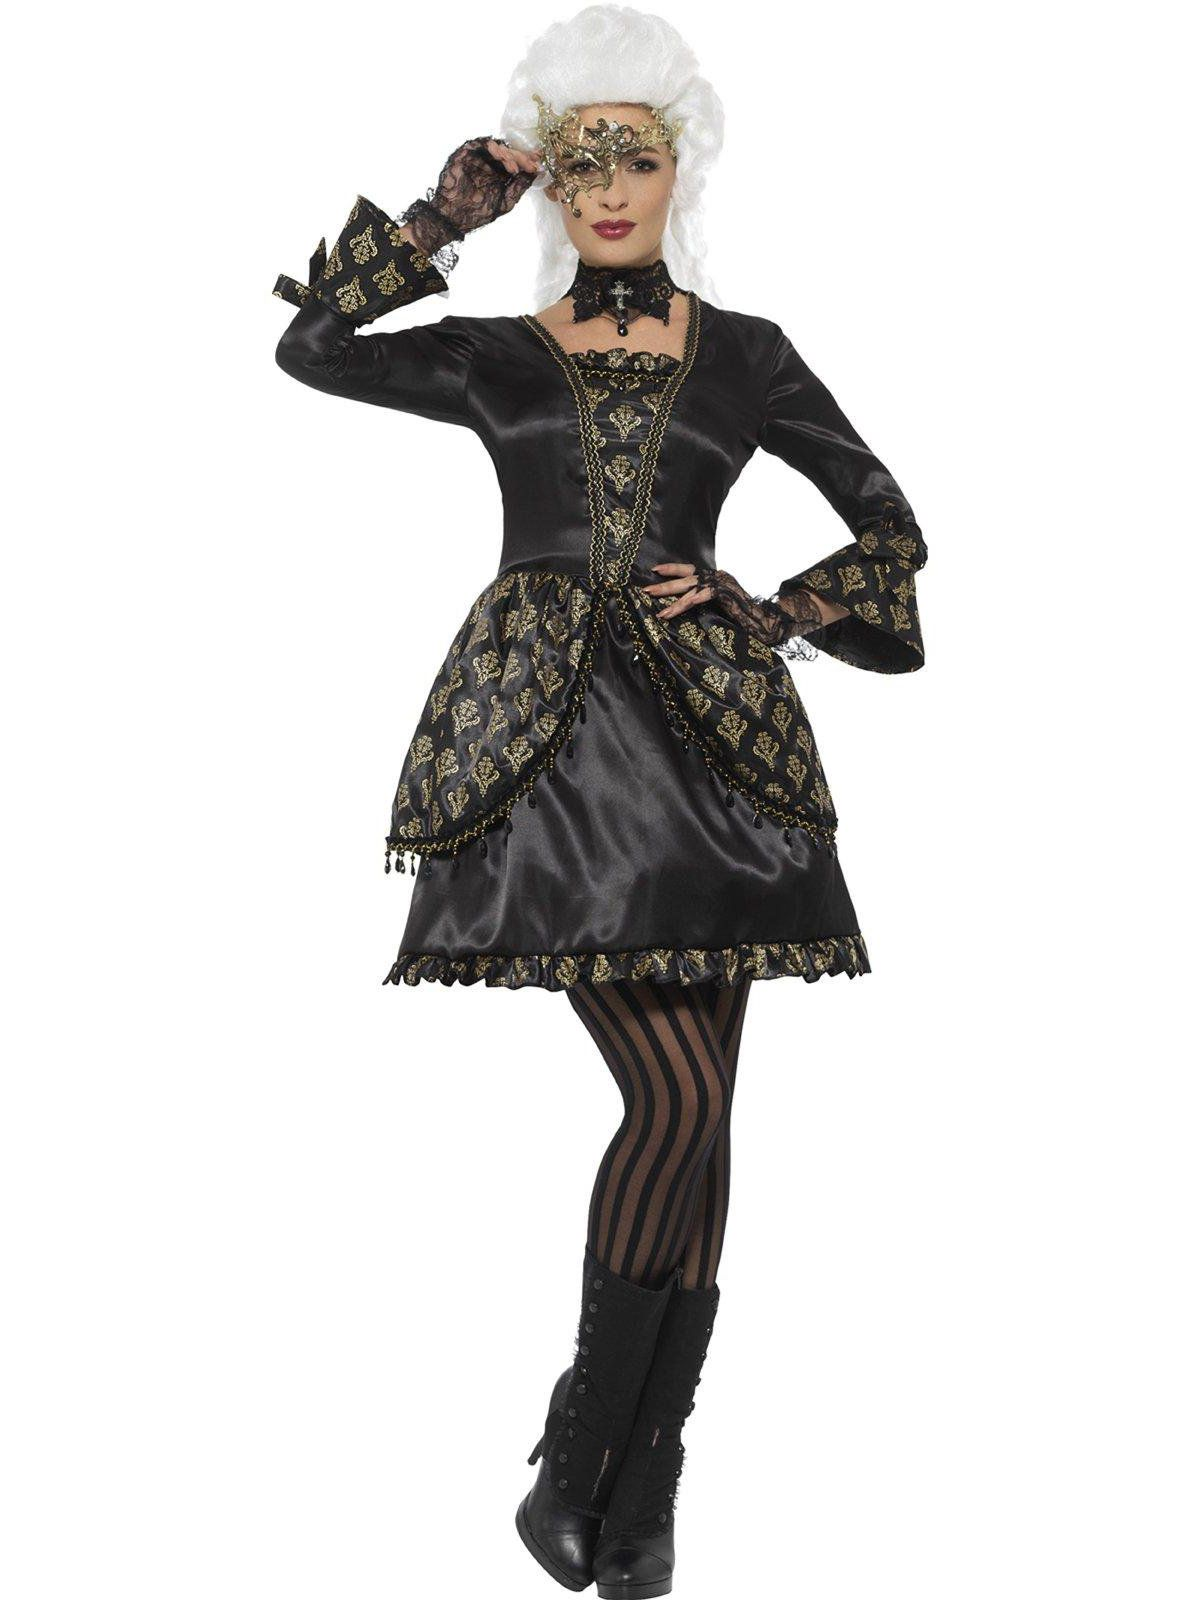 2b1f08291094f Masquerade Costume Deluxe - Womens Costumes for 2018 | Wholesale ...